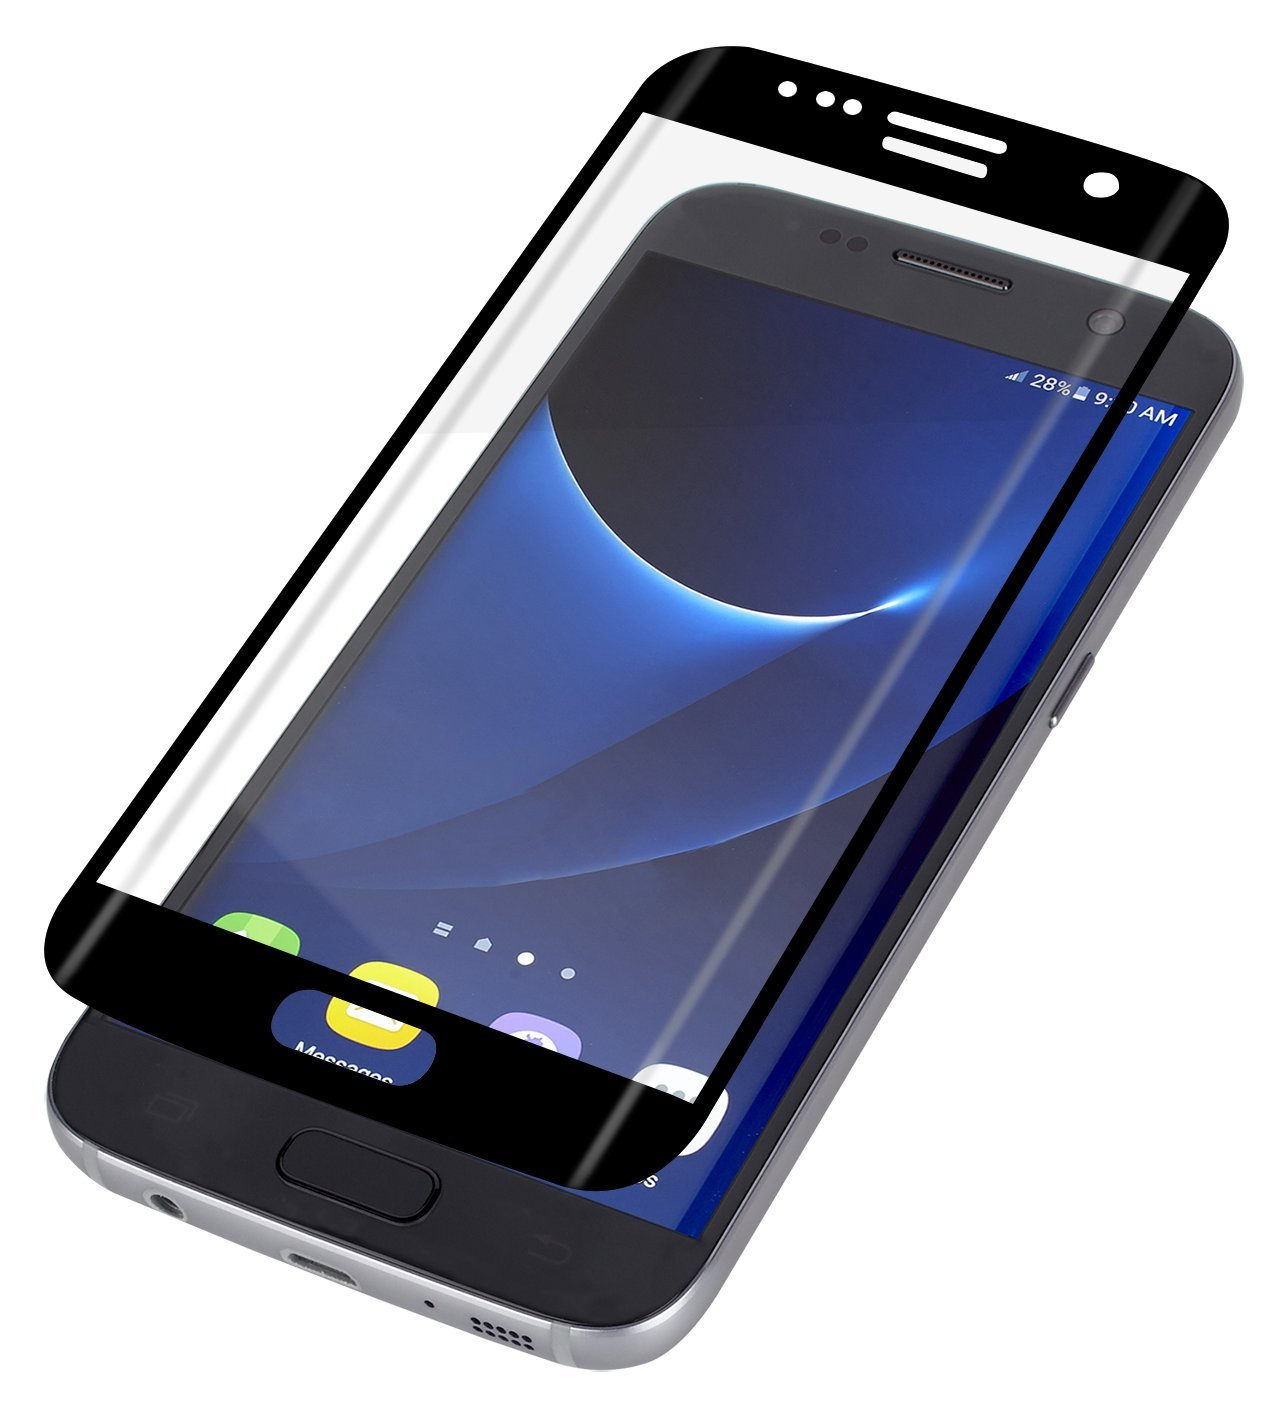 ZAGG InvisibleShield Curved Glass Screen Protector for Samsung Galaxy S7  Edge - Black by ZAGG (Image #1)